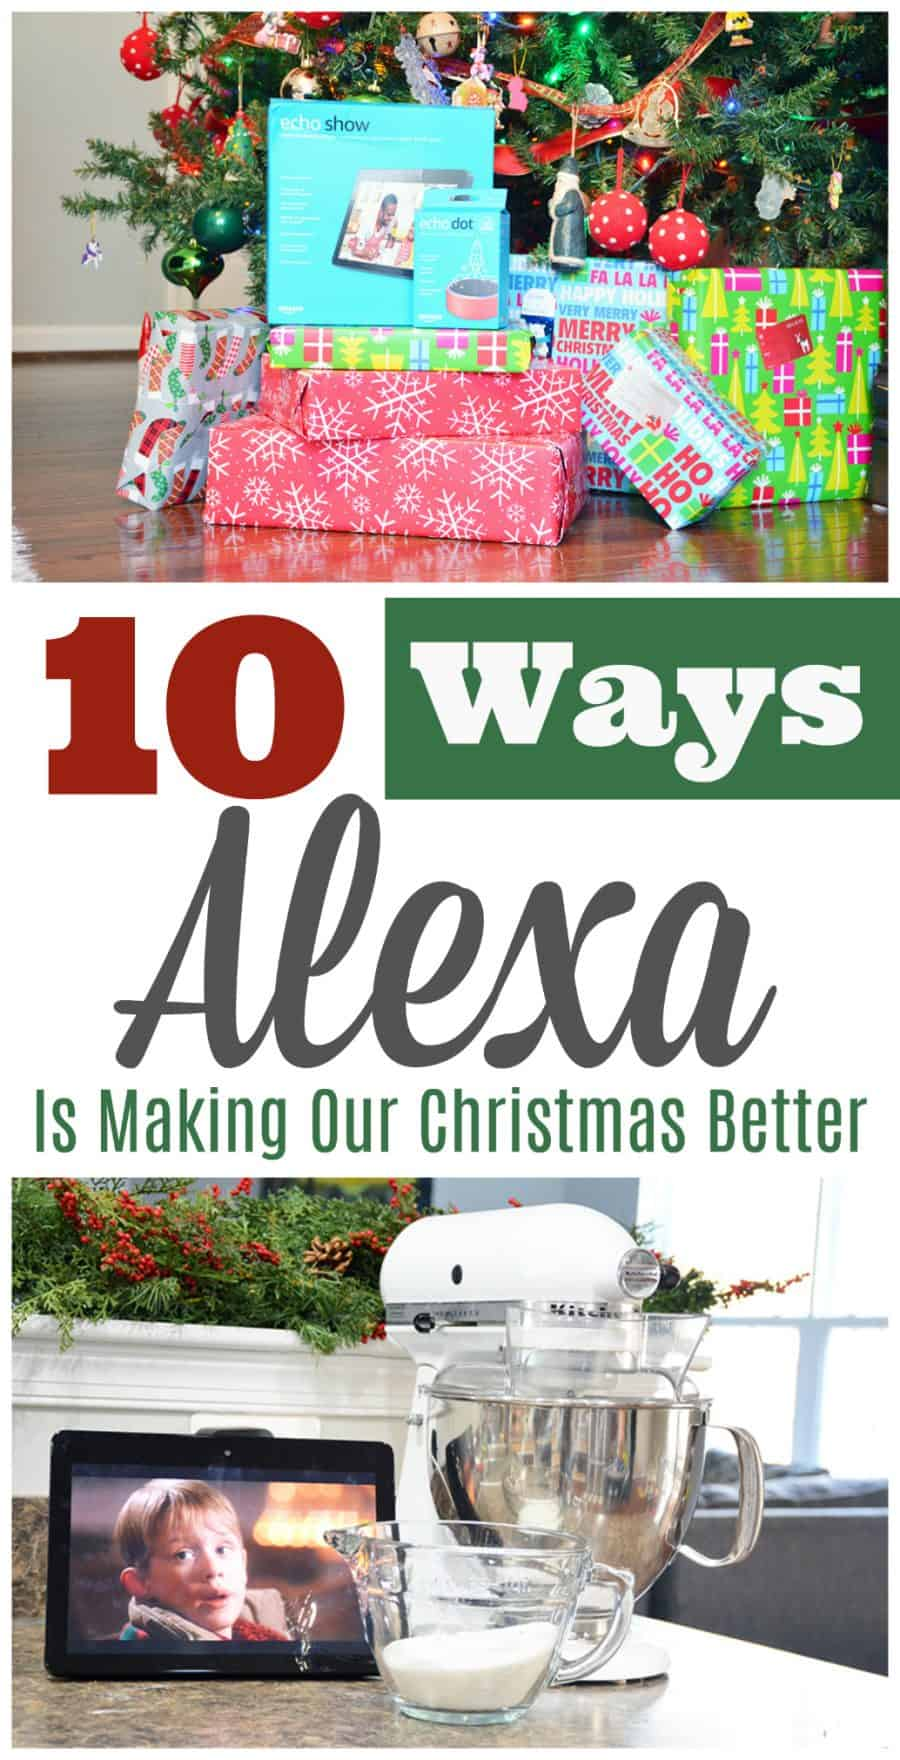 How to use Alexa to celebrate Christmas